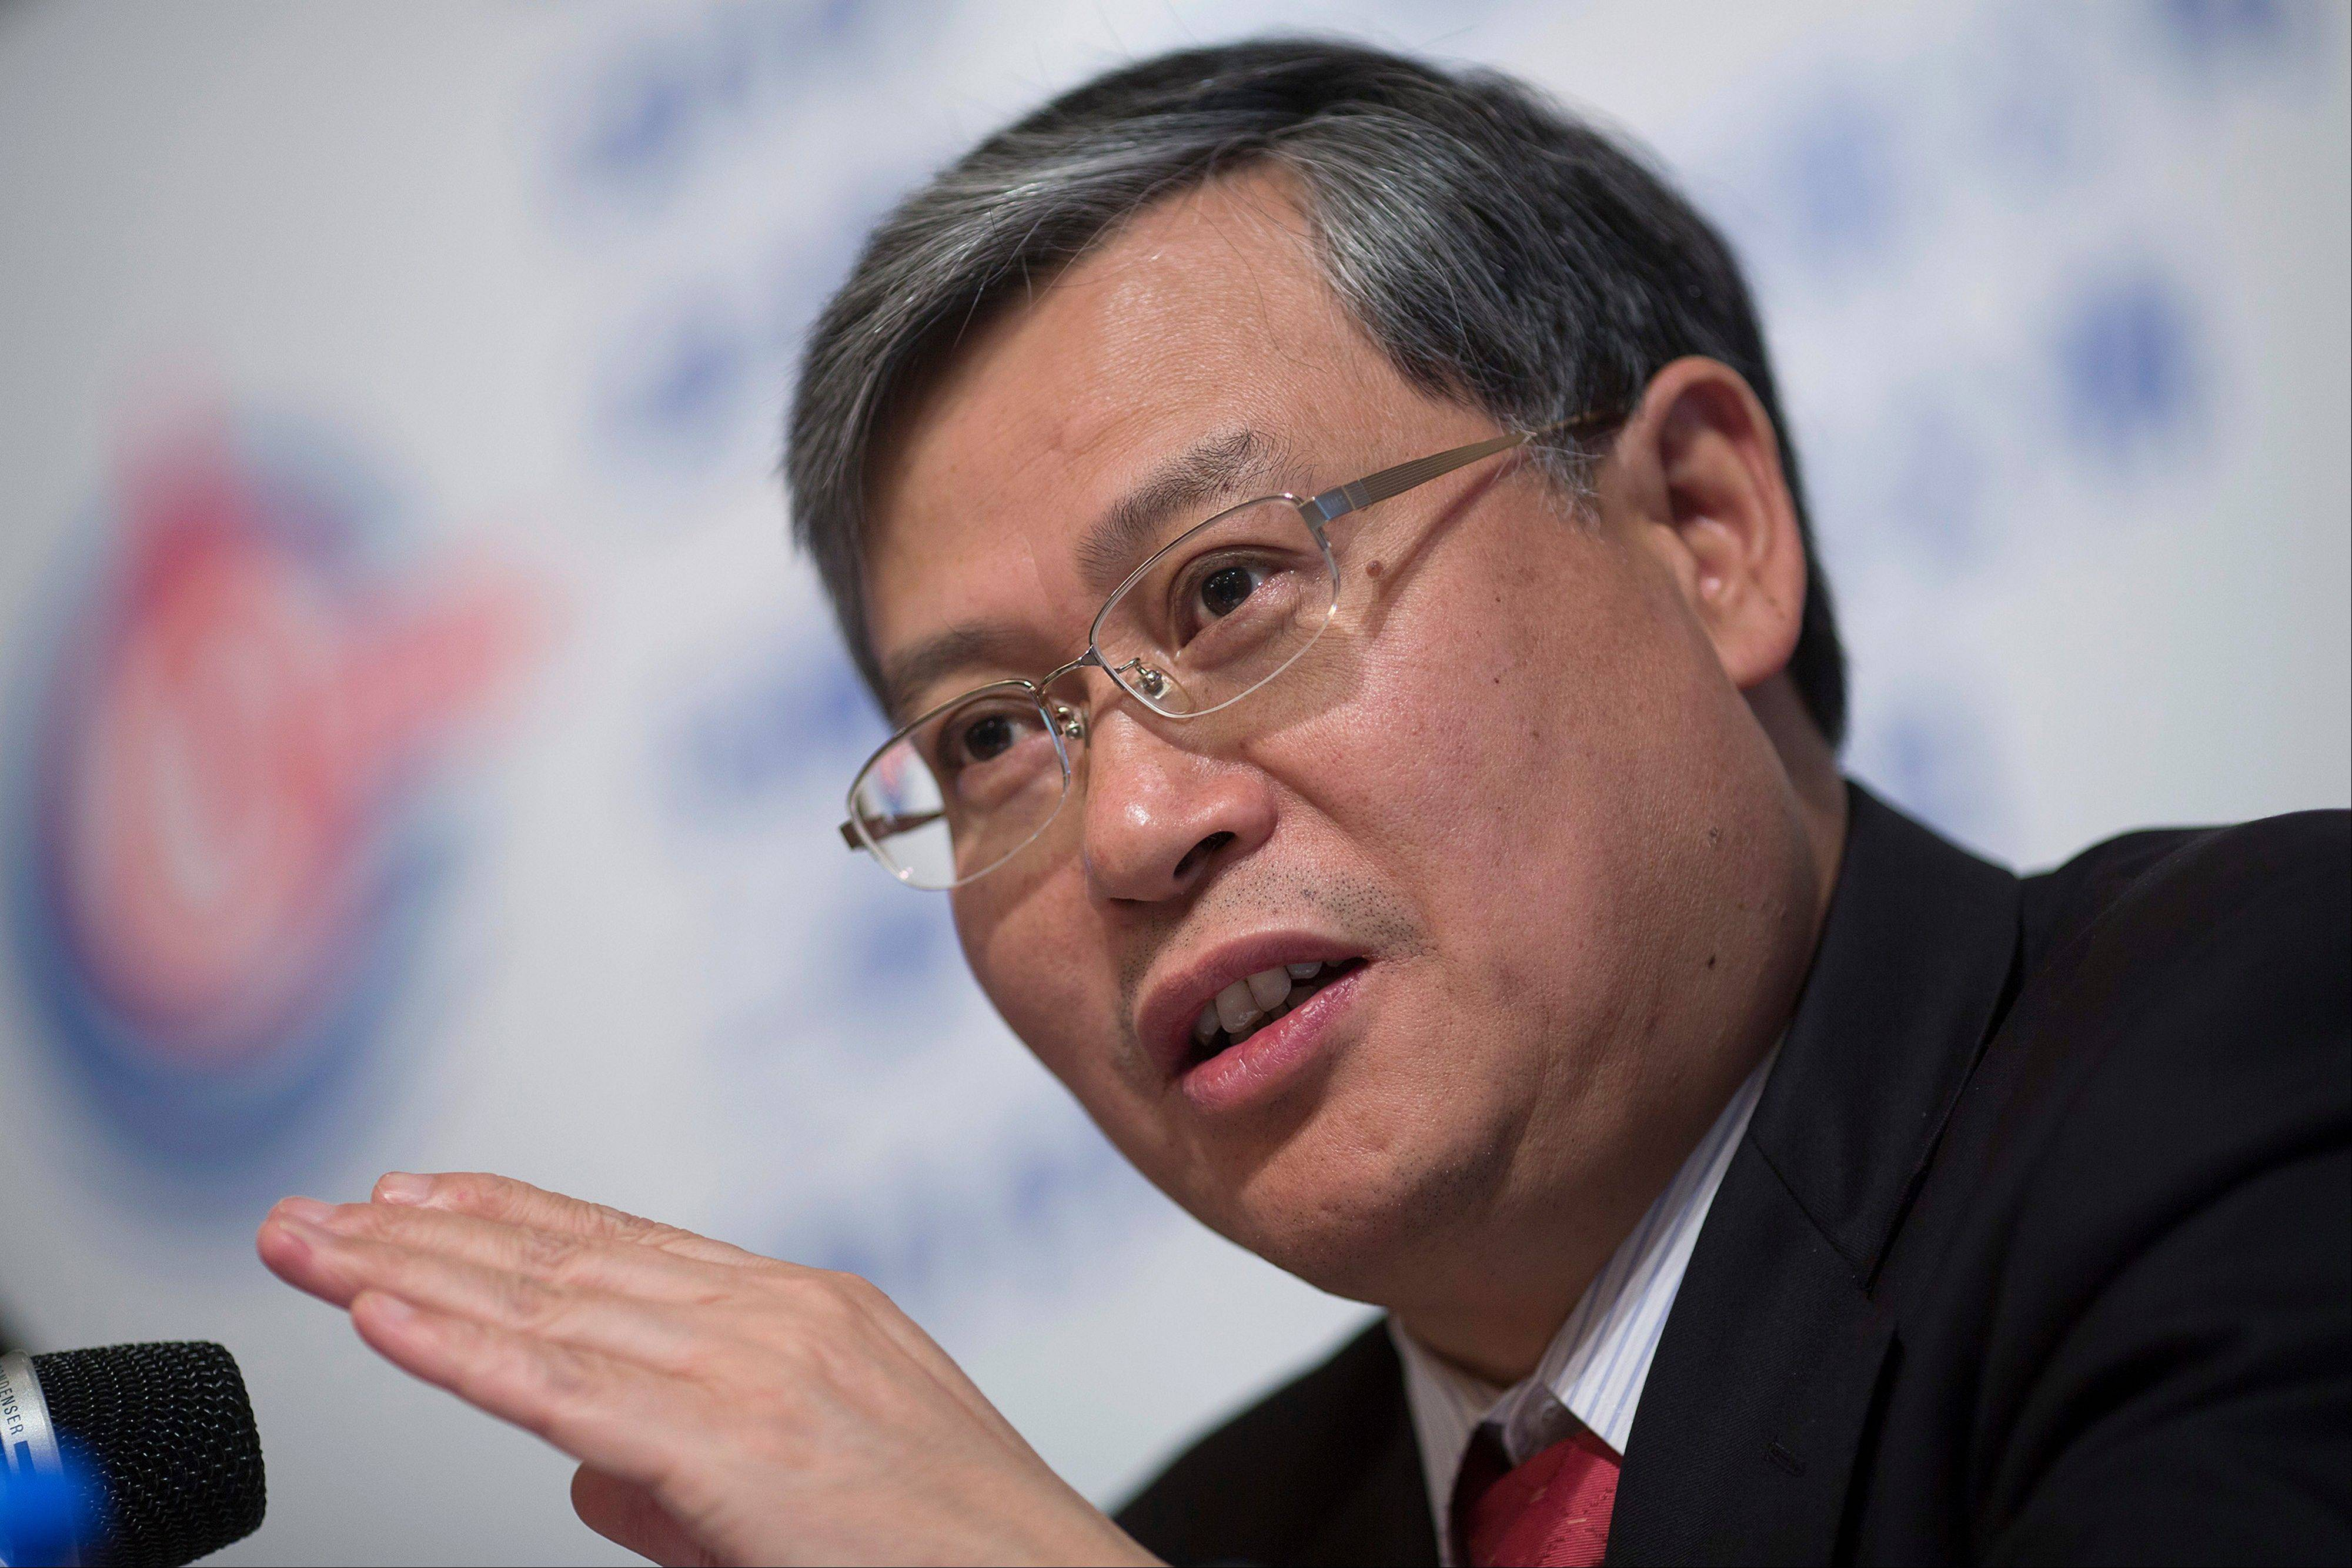 Li Fanrong, chief executive officer of CNOOC Ltd., gestures while speaking during a news conference in Hong Kong, China, on Friday, March 22, 2013. CNOOC reported 2012 profit that missed analyst estimates as China's biggest offshore oil producer spent more to explore and revive stalled output growth.